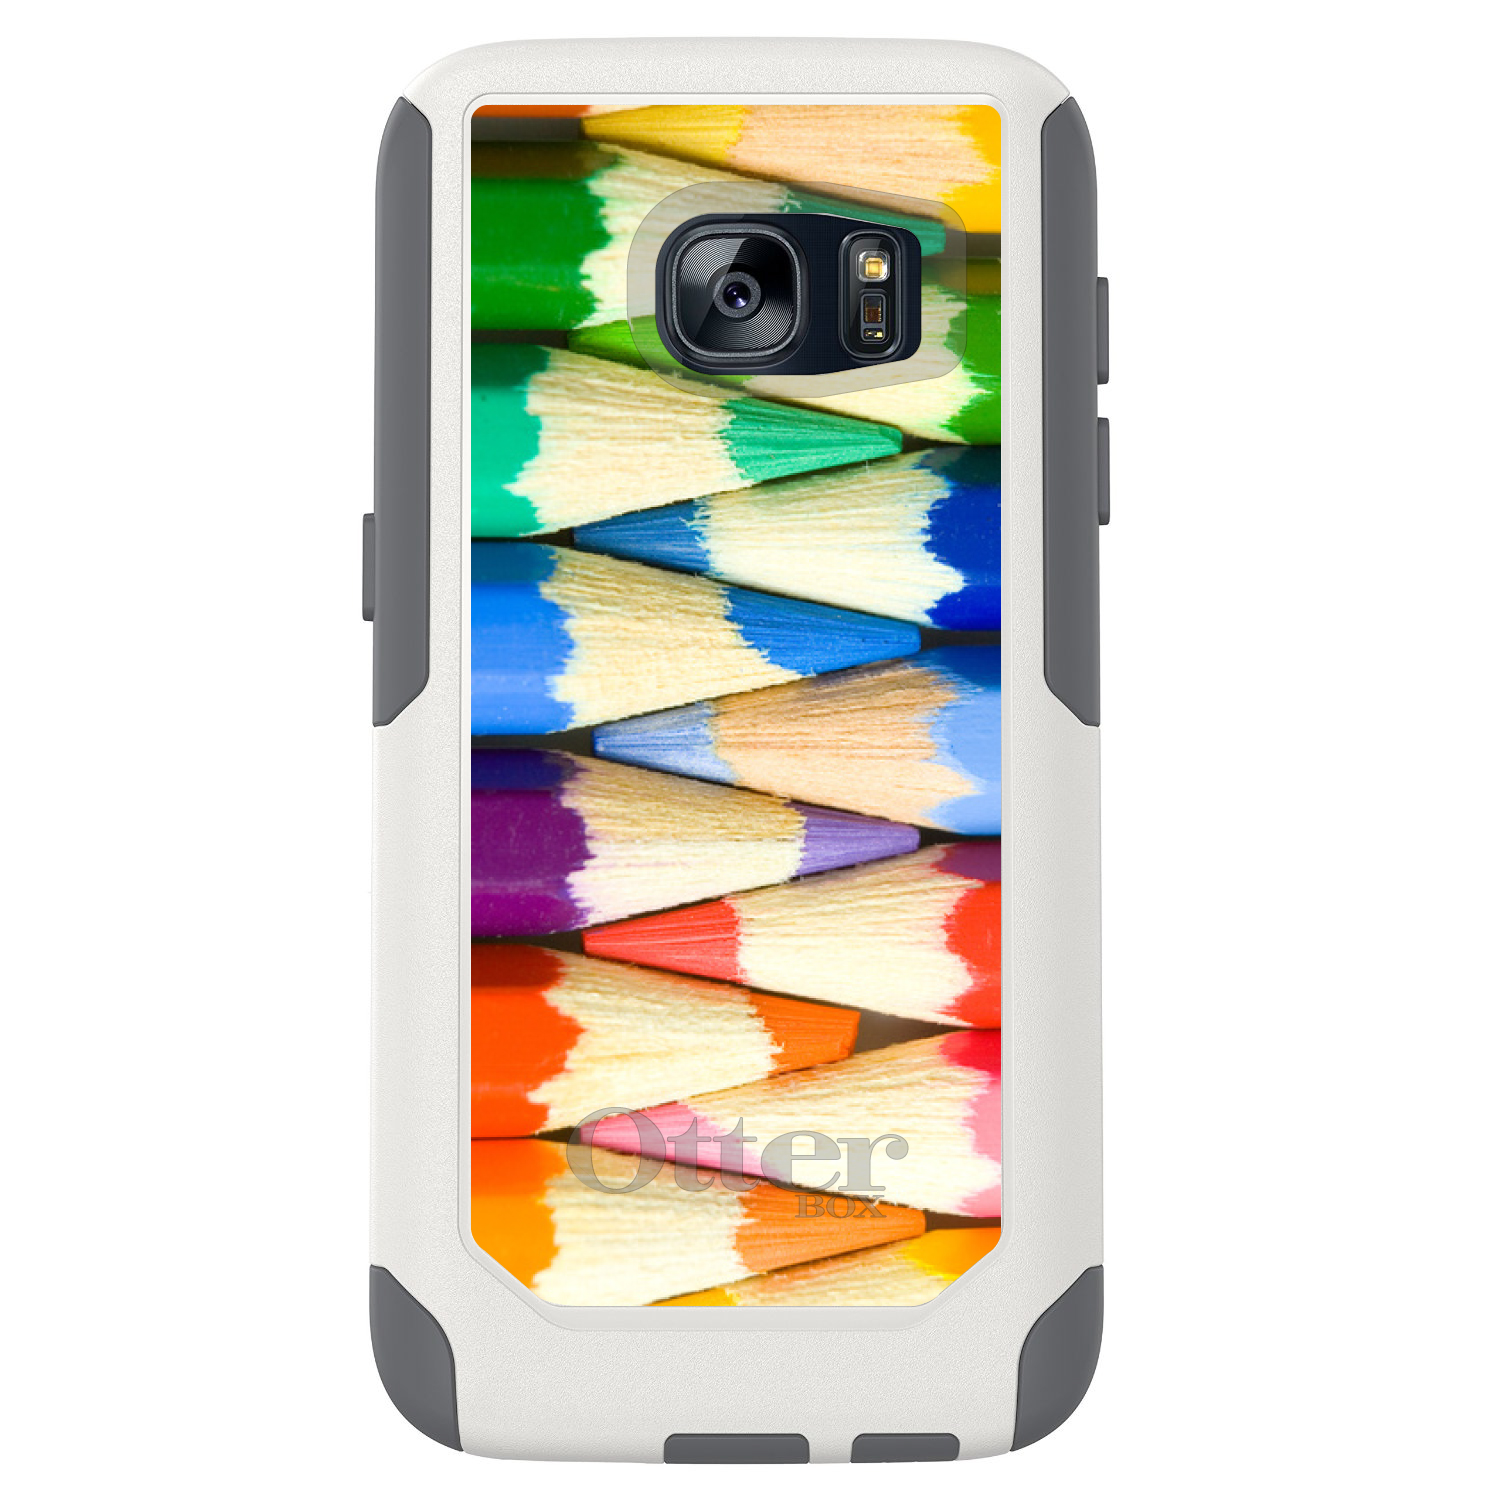 DistinctInk™ Custom White OtterBox Commuter Series Case for Samsung Galaxy S7 - Rainbow Colored Pencils